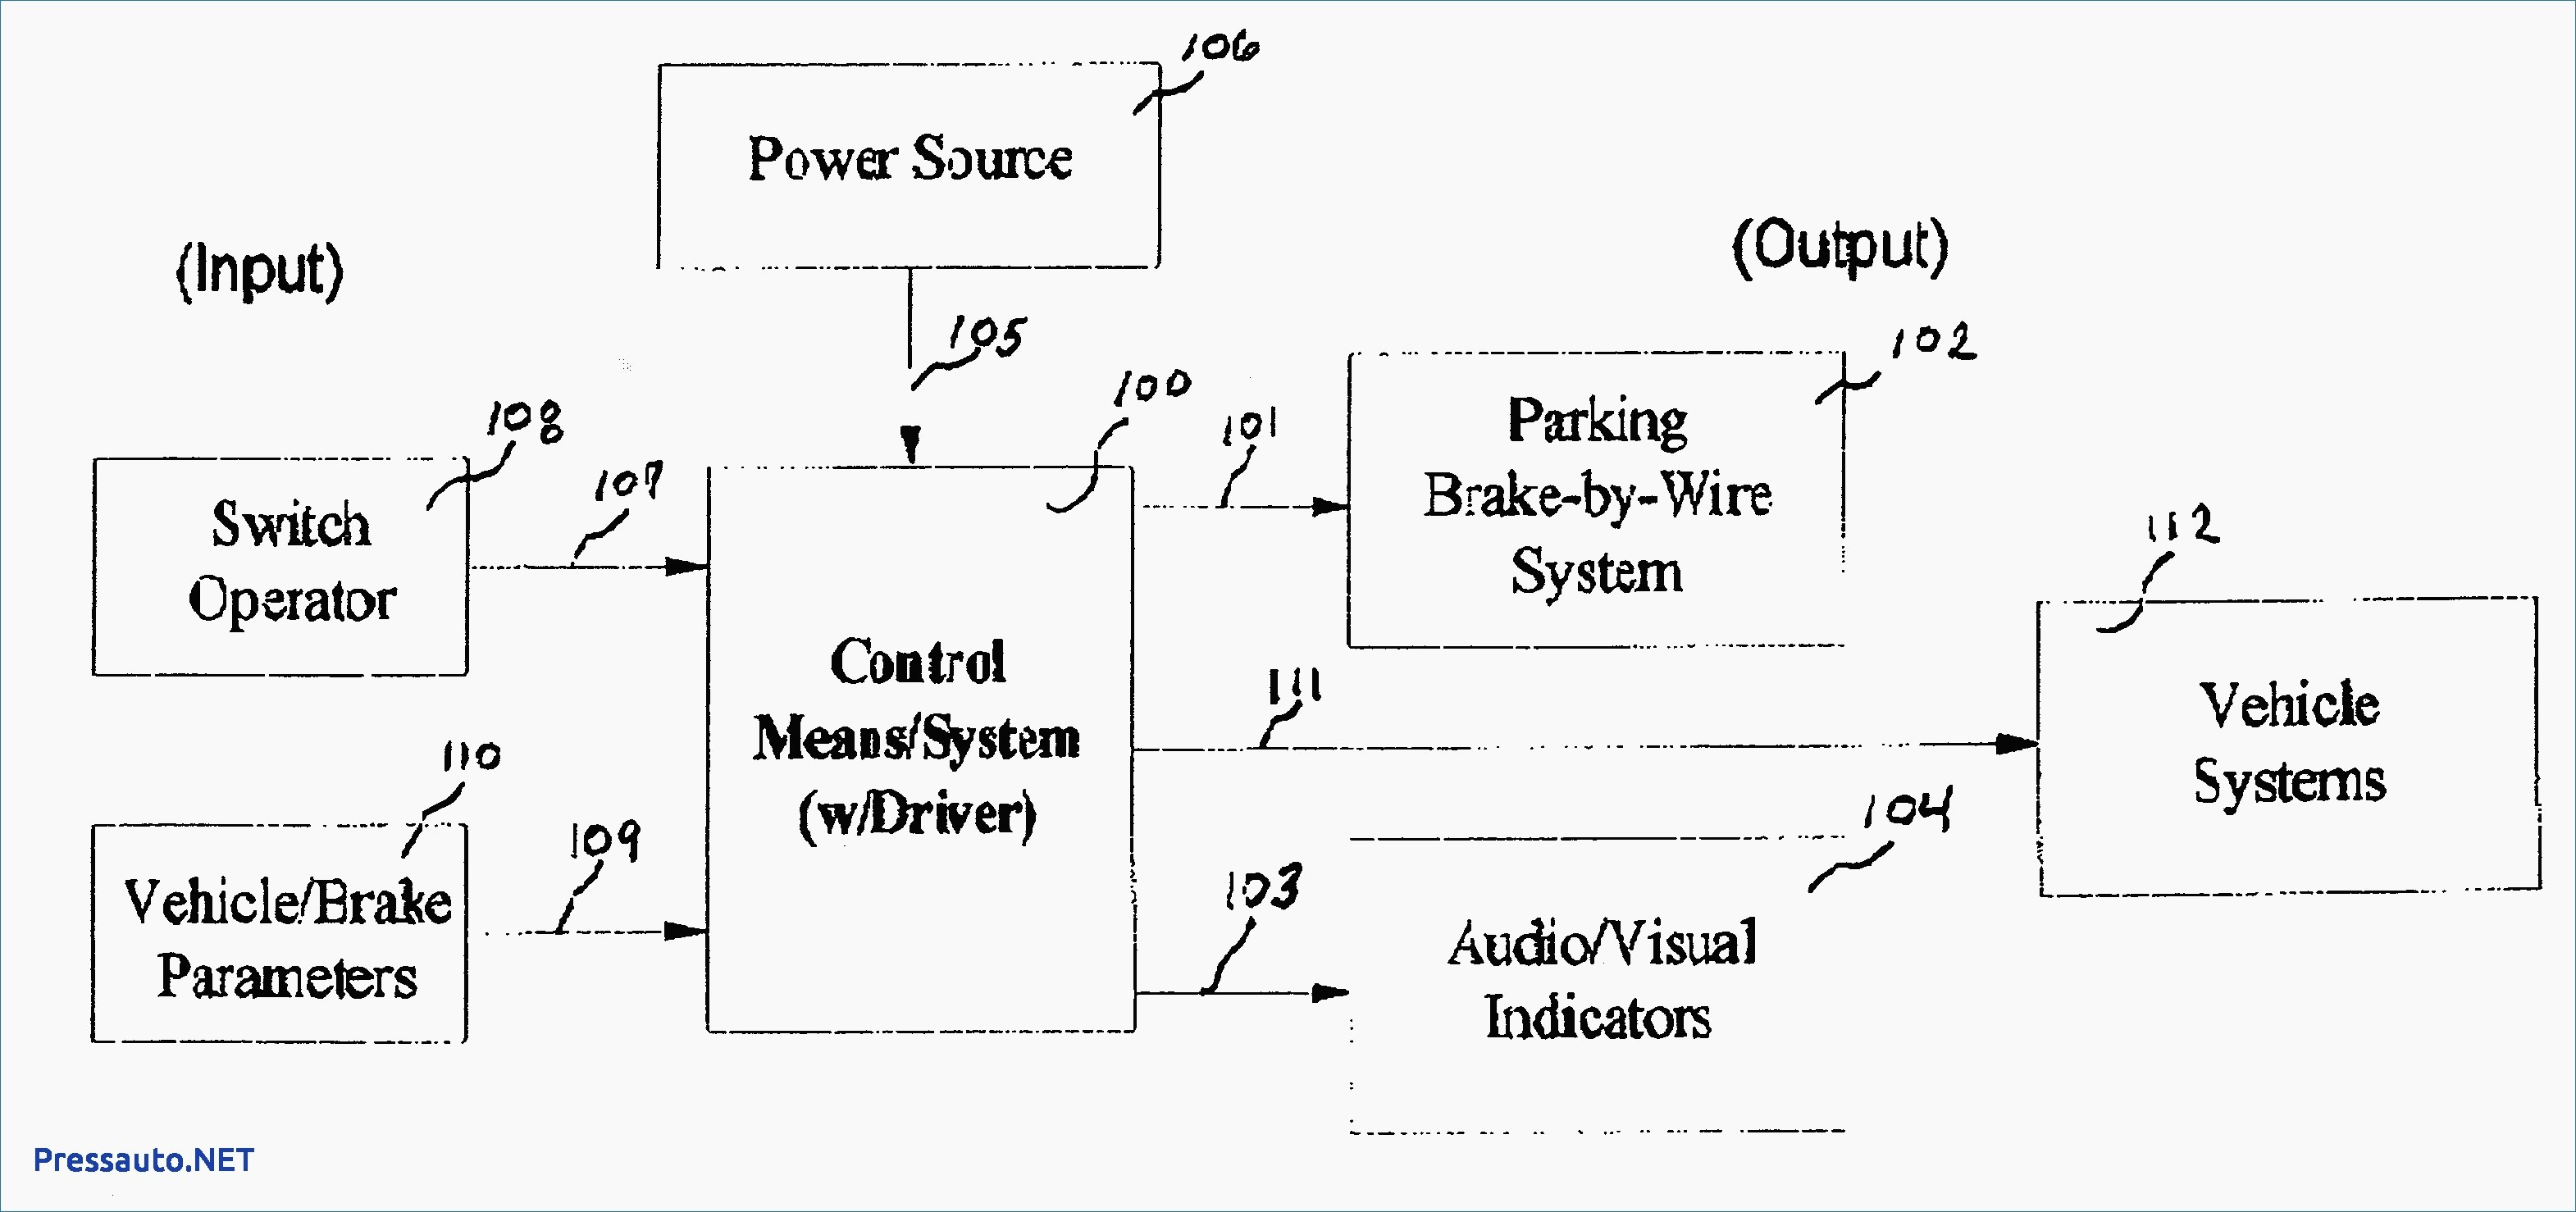 Superb Voyager 1 Circuit Diagram Wiring Library Wiring Cloud Funidienstapotheekhoekschewaardnl